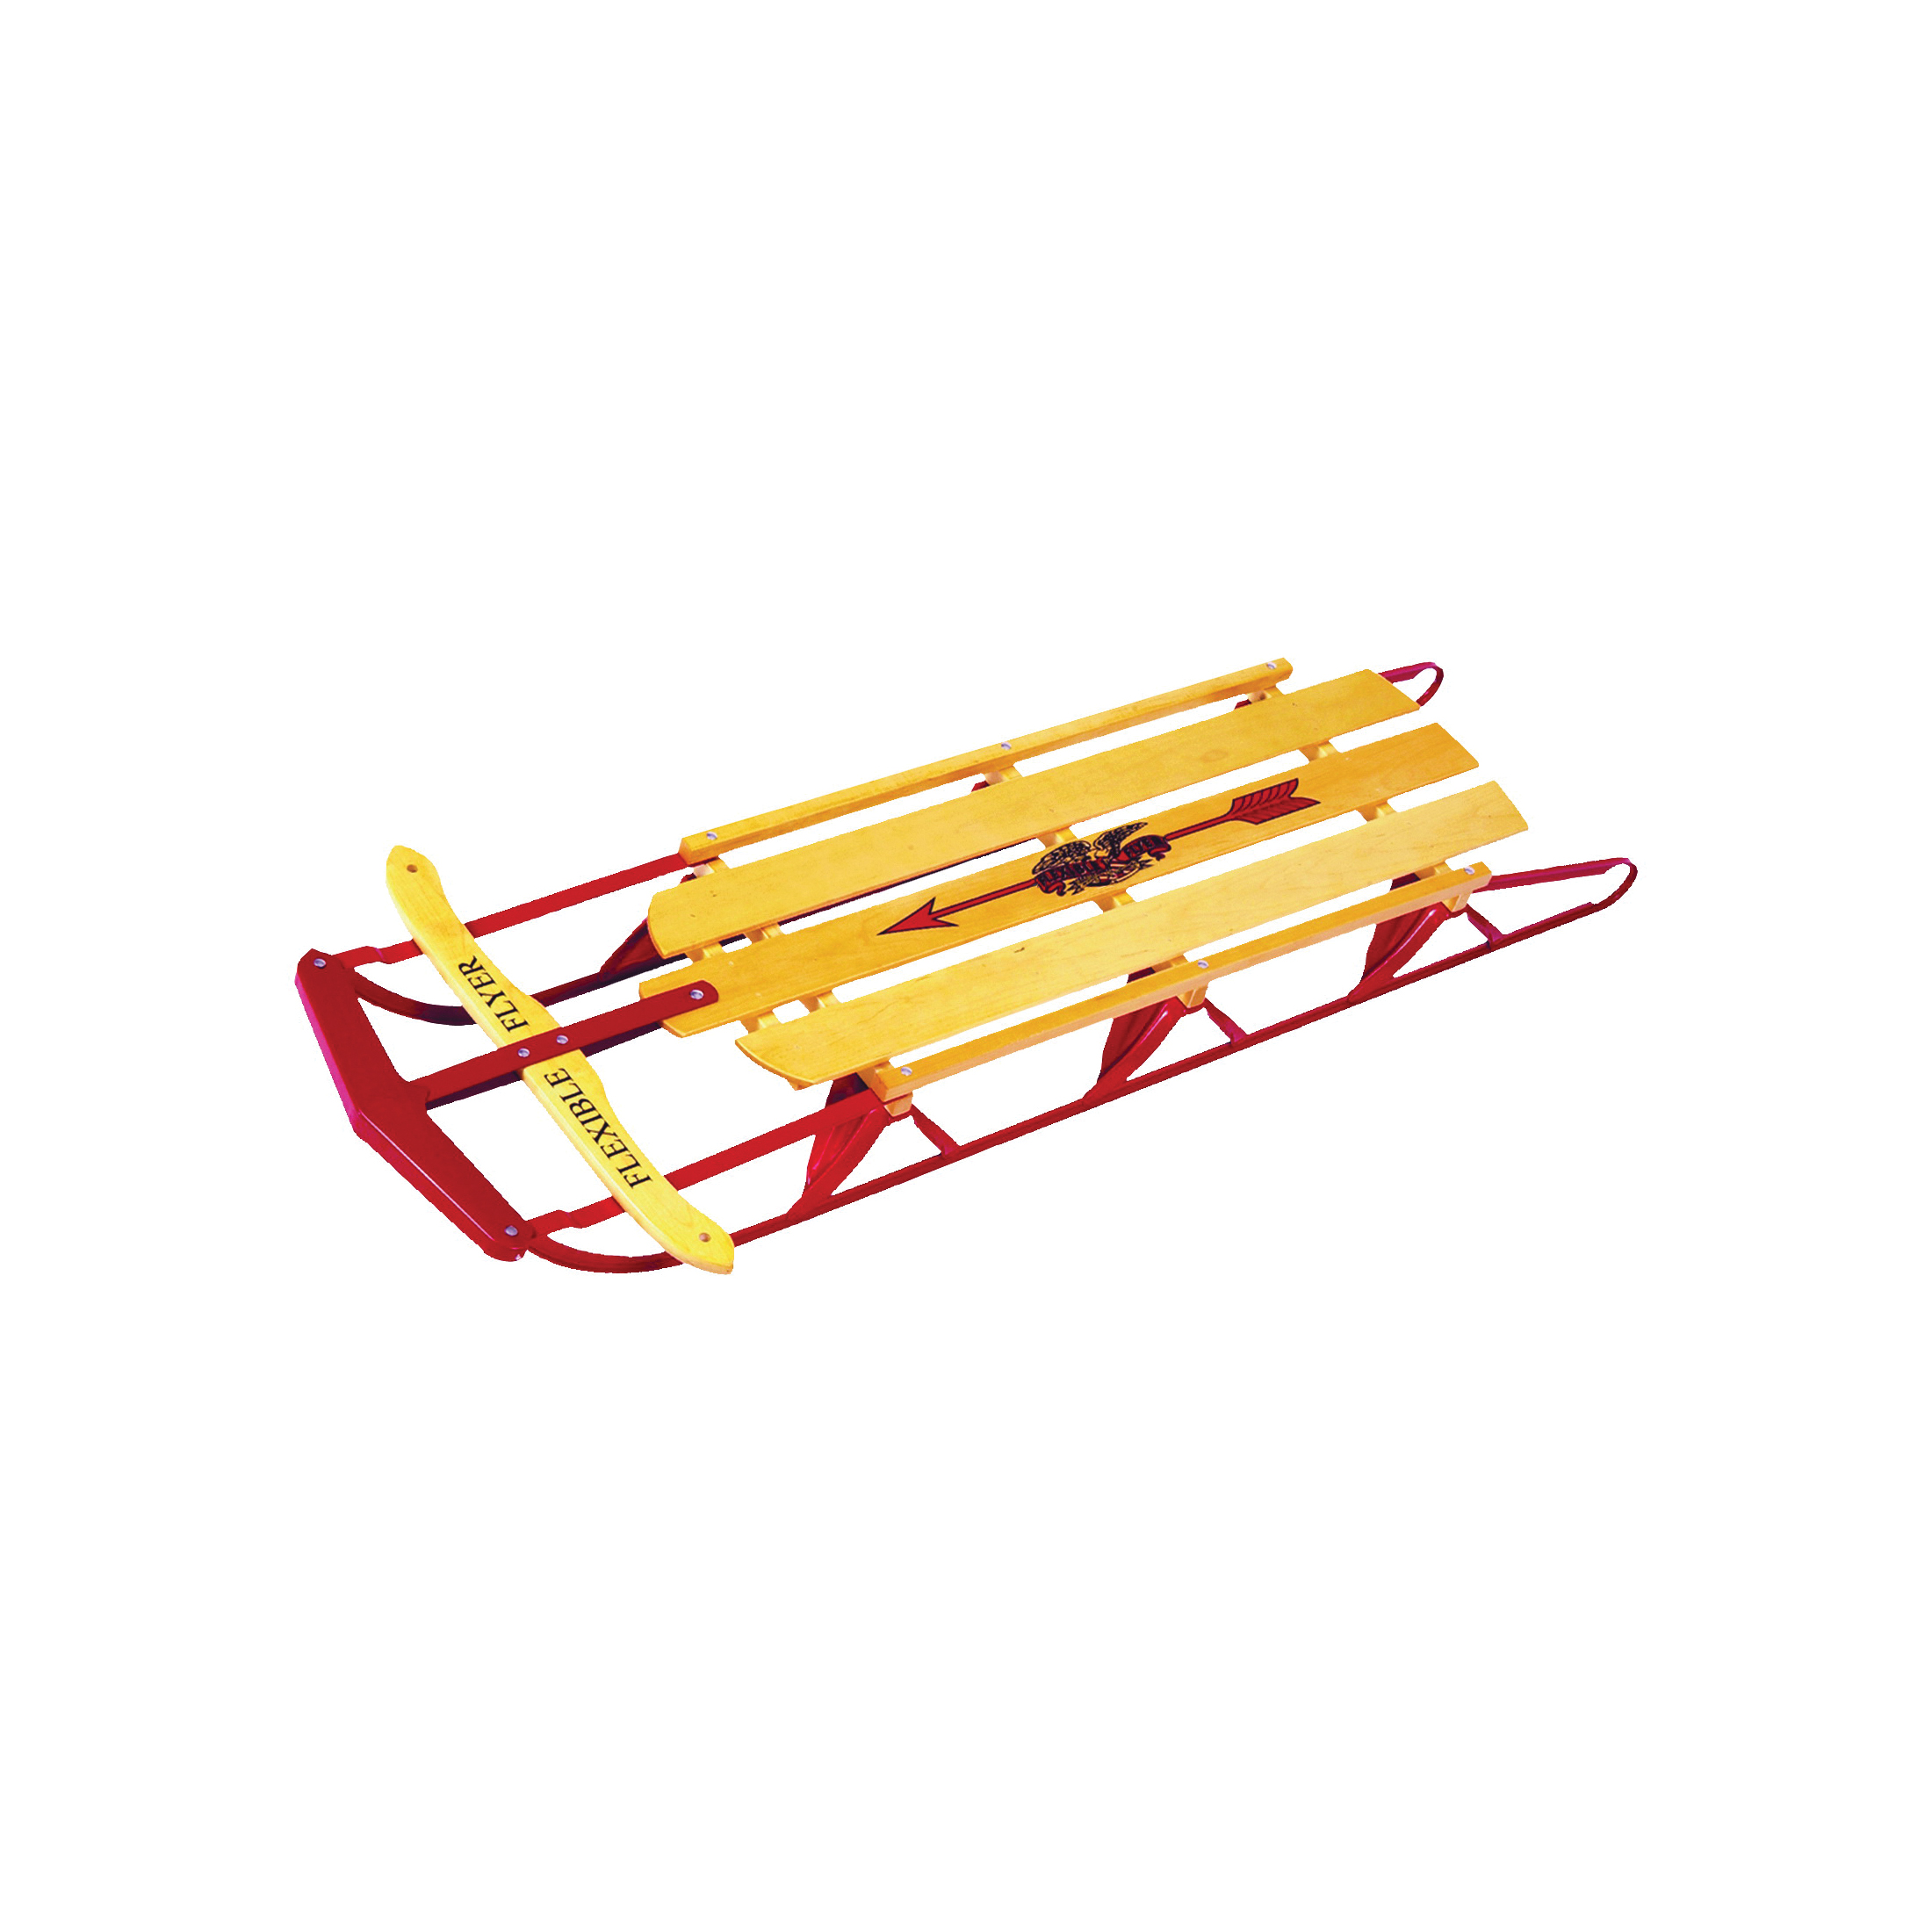 Picture of PARICON 1060 Flyer Snow Sled, Flexible, 5-Years Old Capacity, Steel, Red